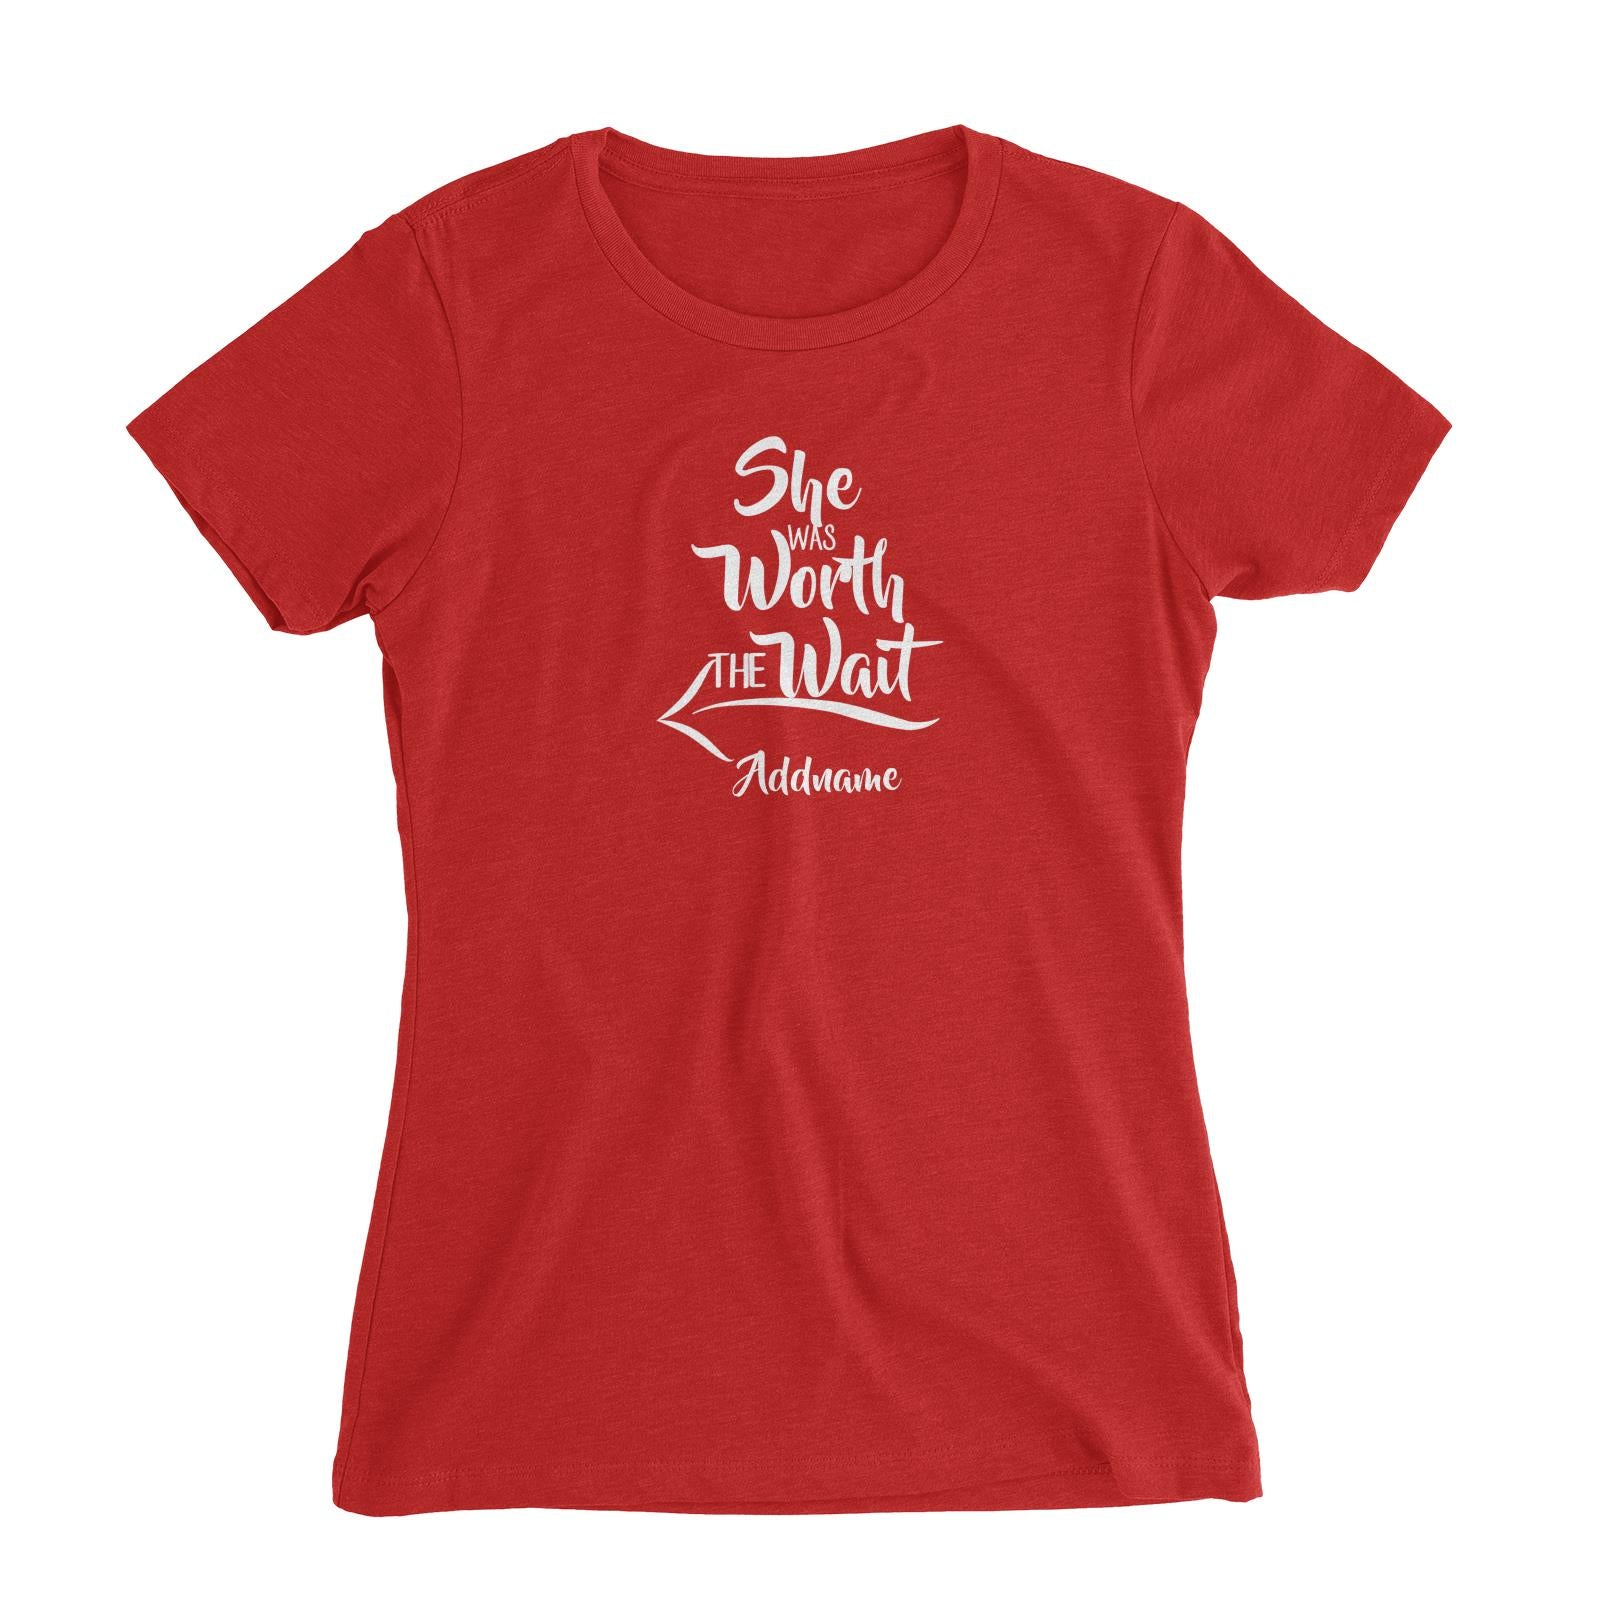 Couple Series She Was Worth The Wait Addname Women Slim Fit T-Shirt